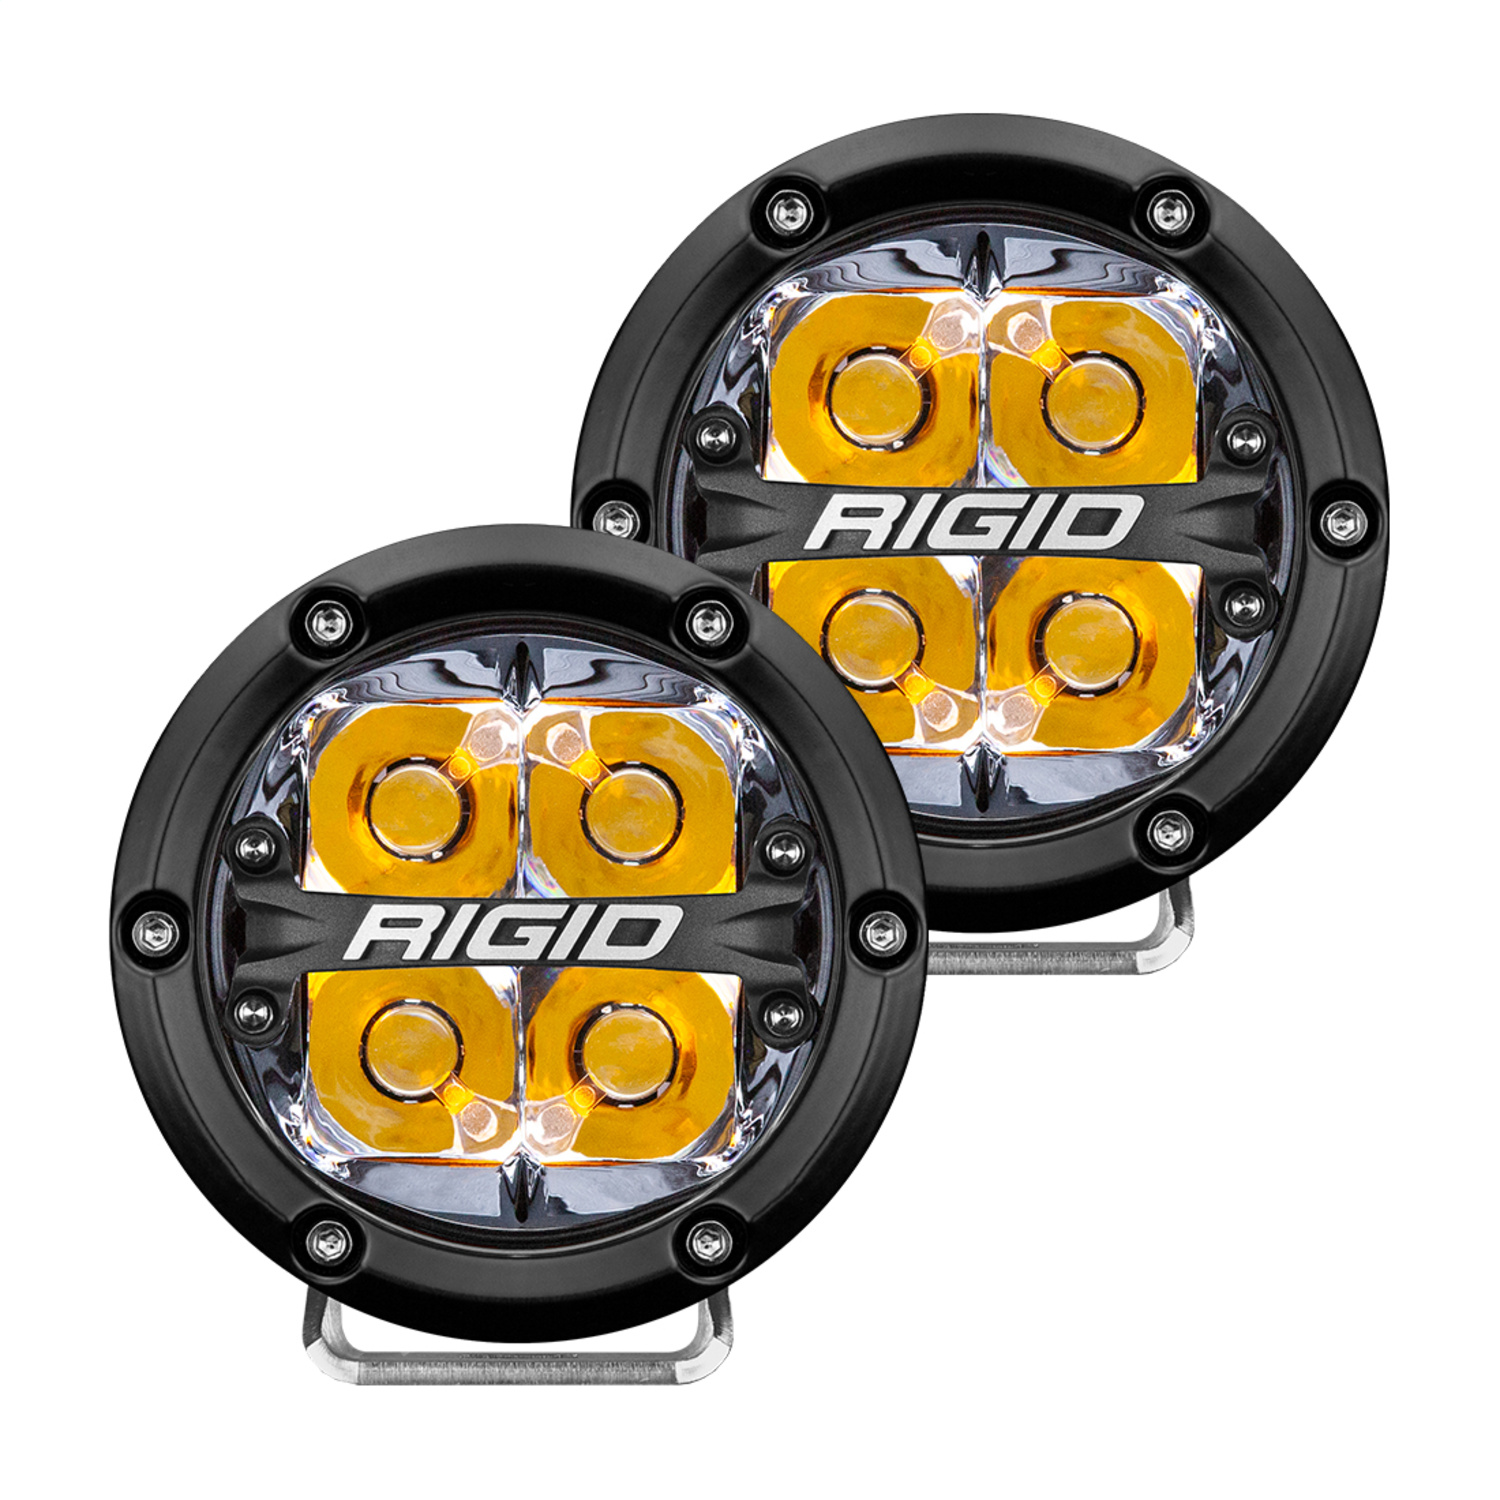 360-Series LED Off-Road Light, 4 in., Spot Beam, For High Speed 50 MPH Plus, Amber Backlight, Pair